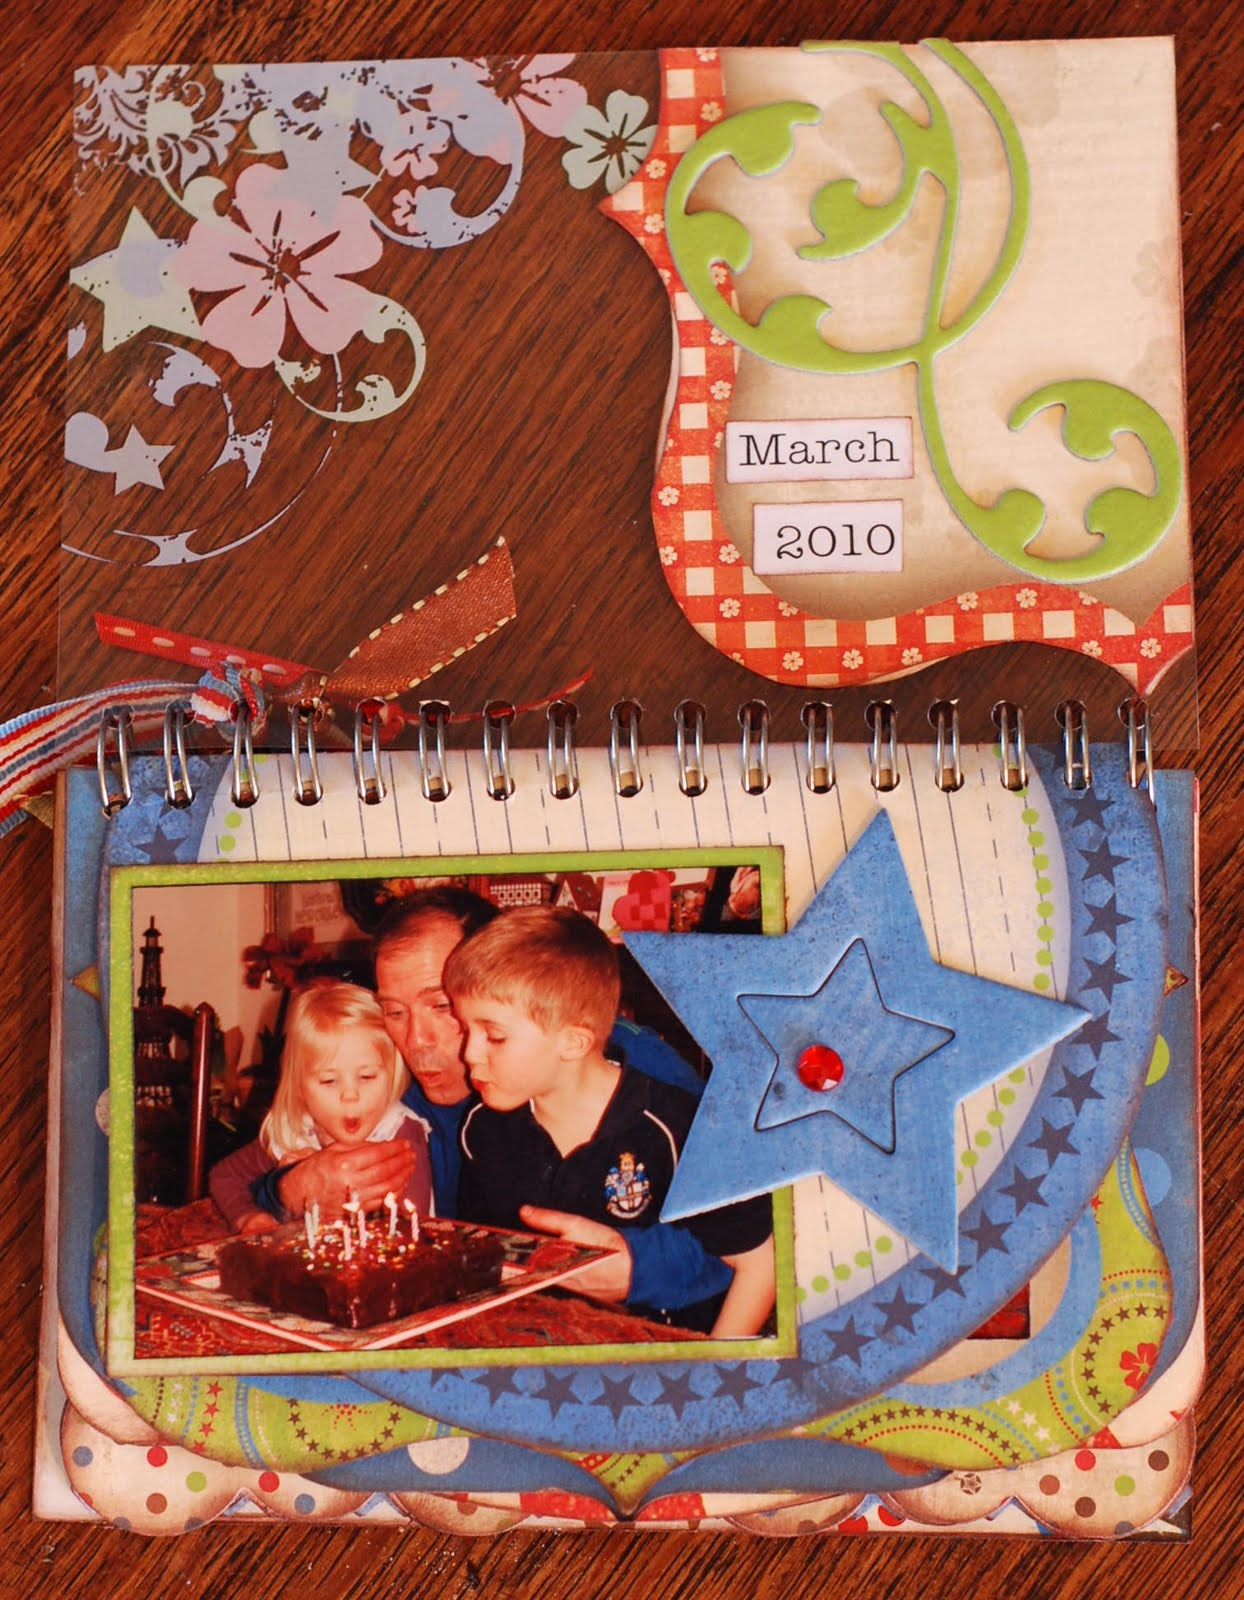 How to put scrapbook back together -  Took Half The Pages Out There Are Doubles And Then Adhered The Remaining Pages Back To Back And Put The Whole Thing Back Together Again